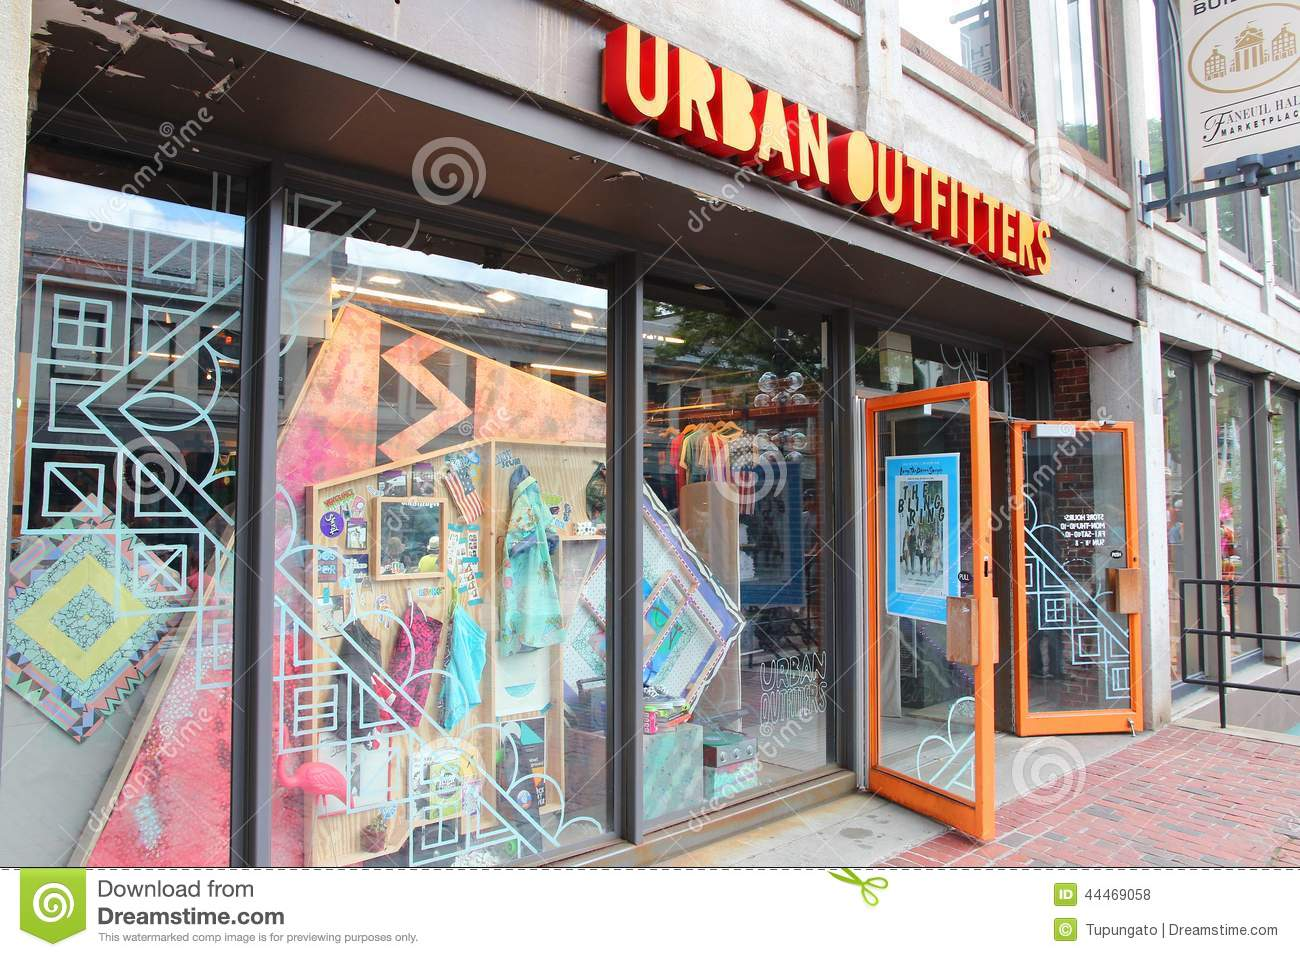 Urban Outfitters USA. The operation of Urban Outfitters in the US is natural. Urban Outfitters USA has a network of shops, which you can find in majority of American towns, maybe even in your own. You can find a complete list of shops, opening hours and maps below on this page. Urban Outfitters online store.